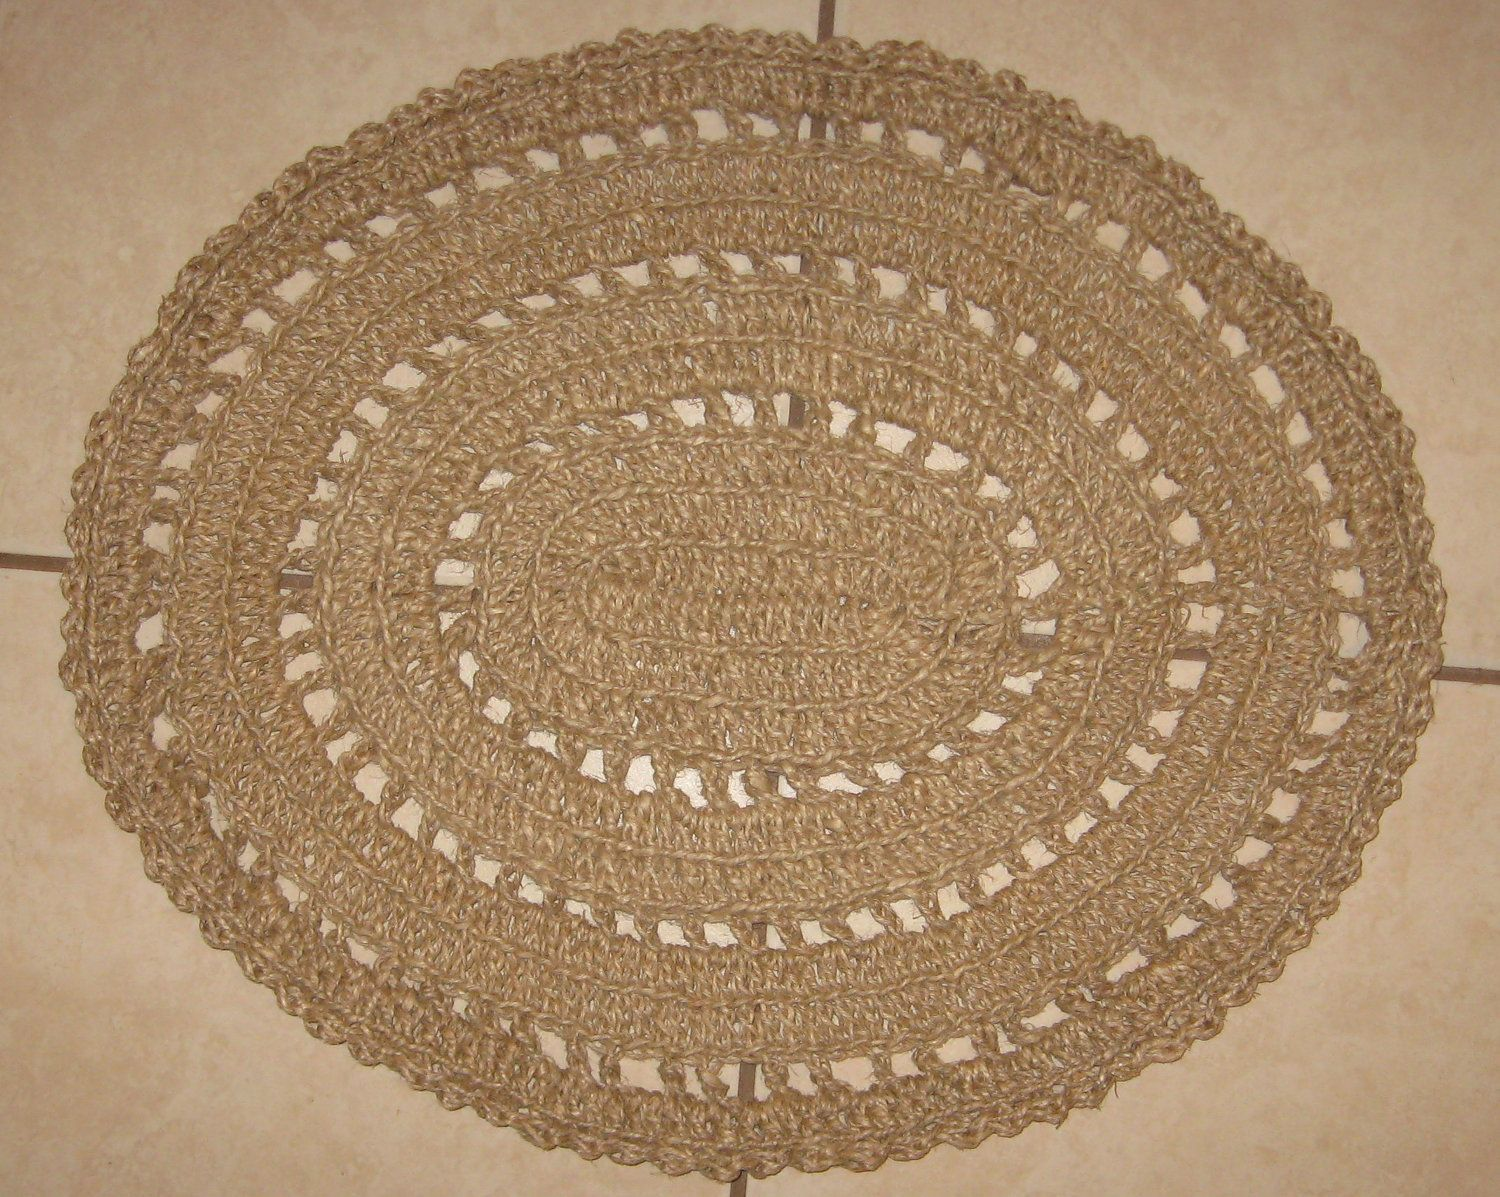 Crochet Natural Hemp Rope Rug.